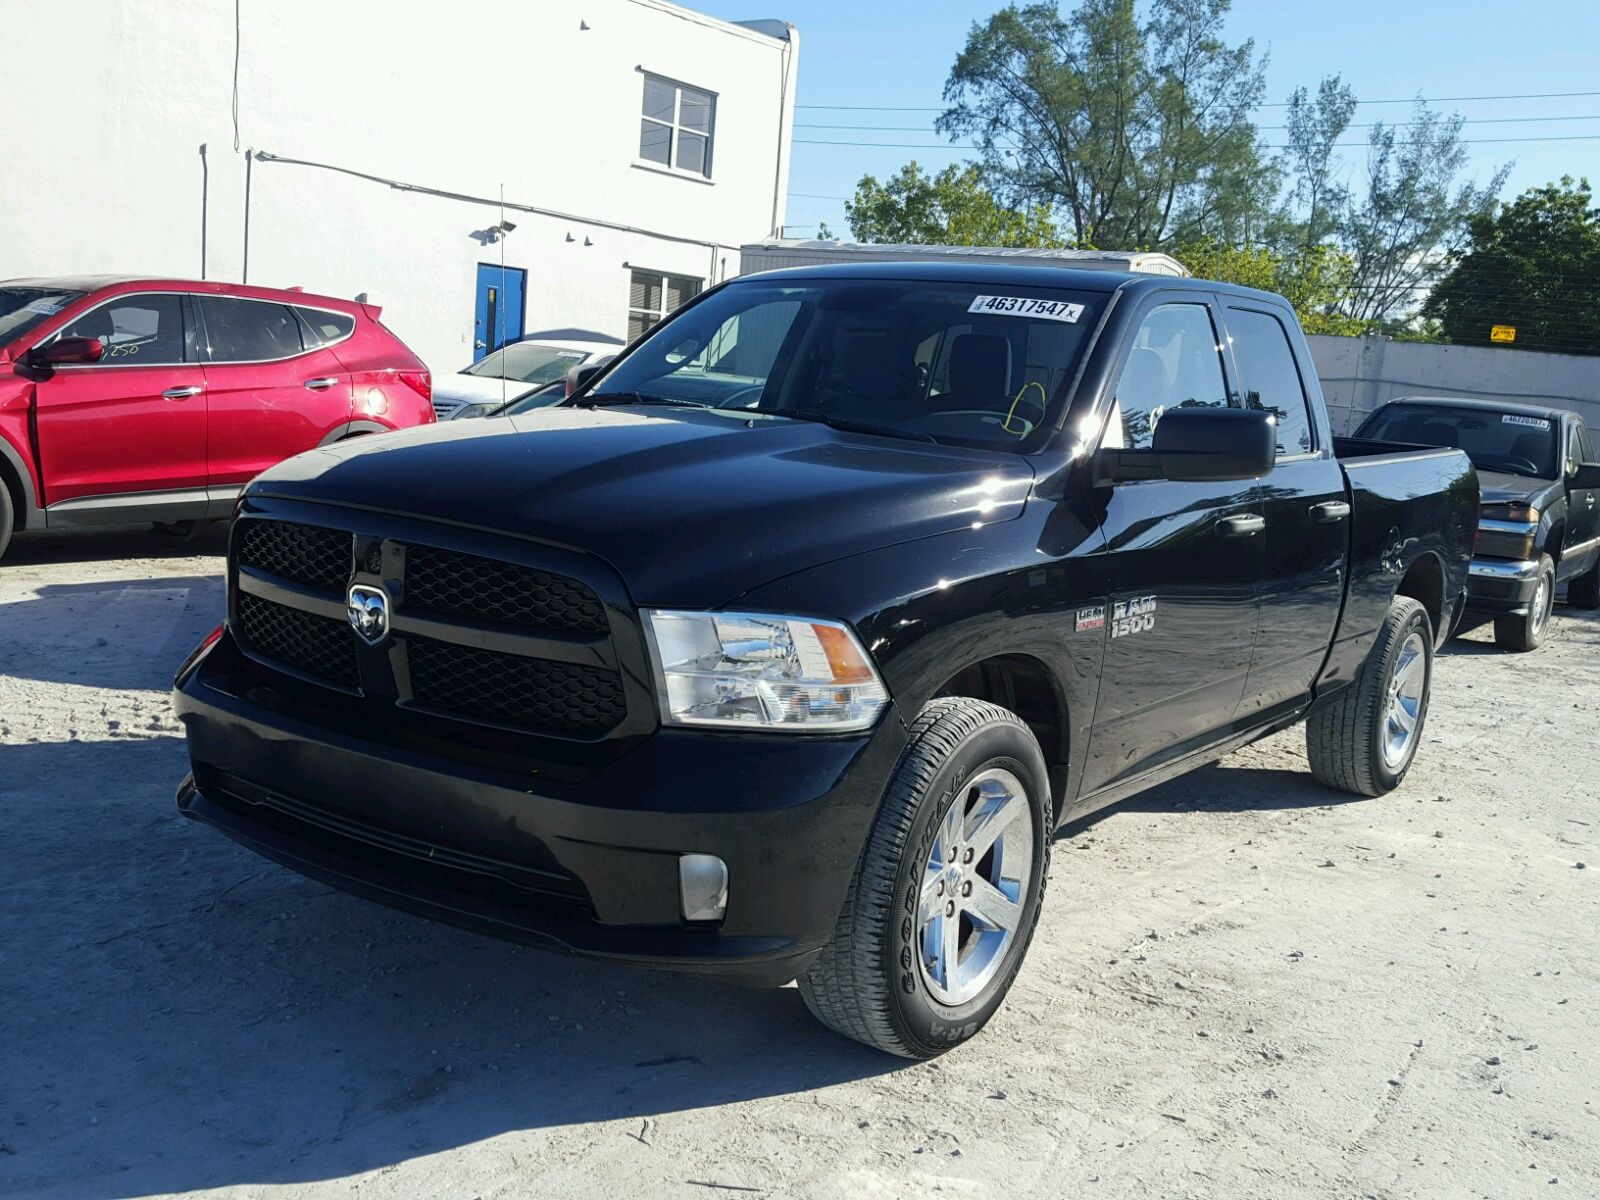 2013 dodge ram 1500 for sale at copart miami fl lot 46317547. Black Bedroom Furniture Sets. Home Design Ideas